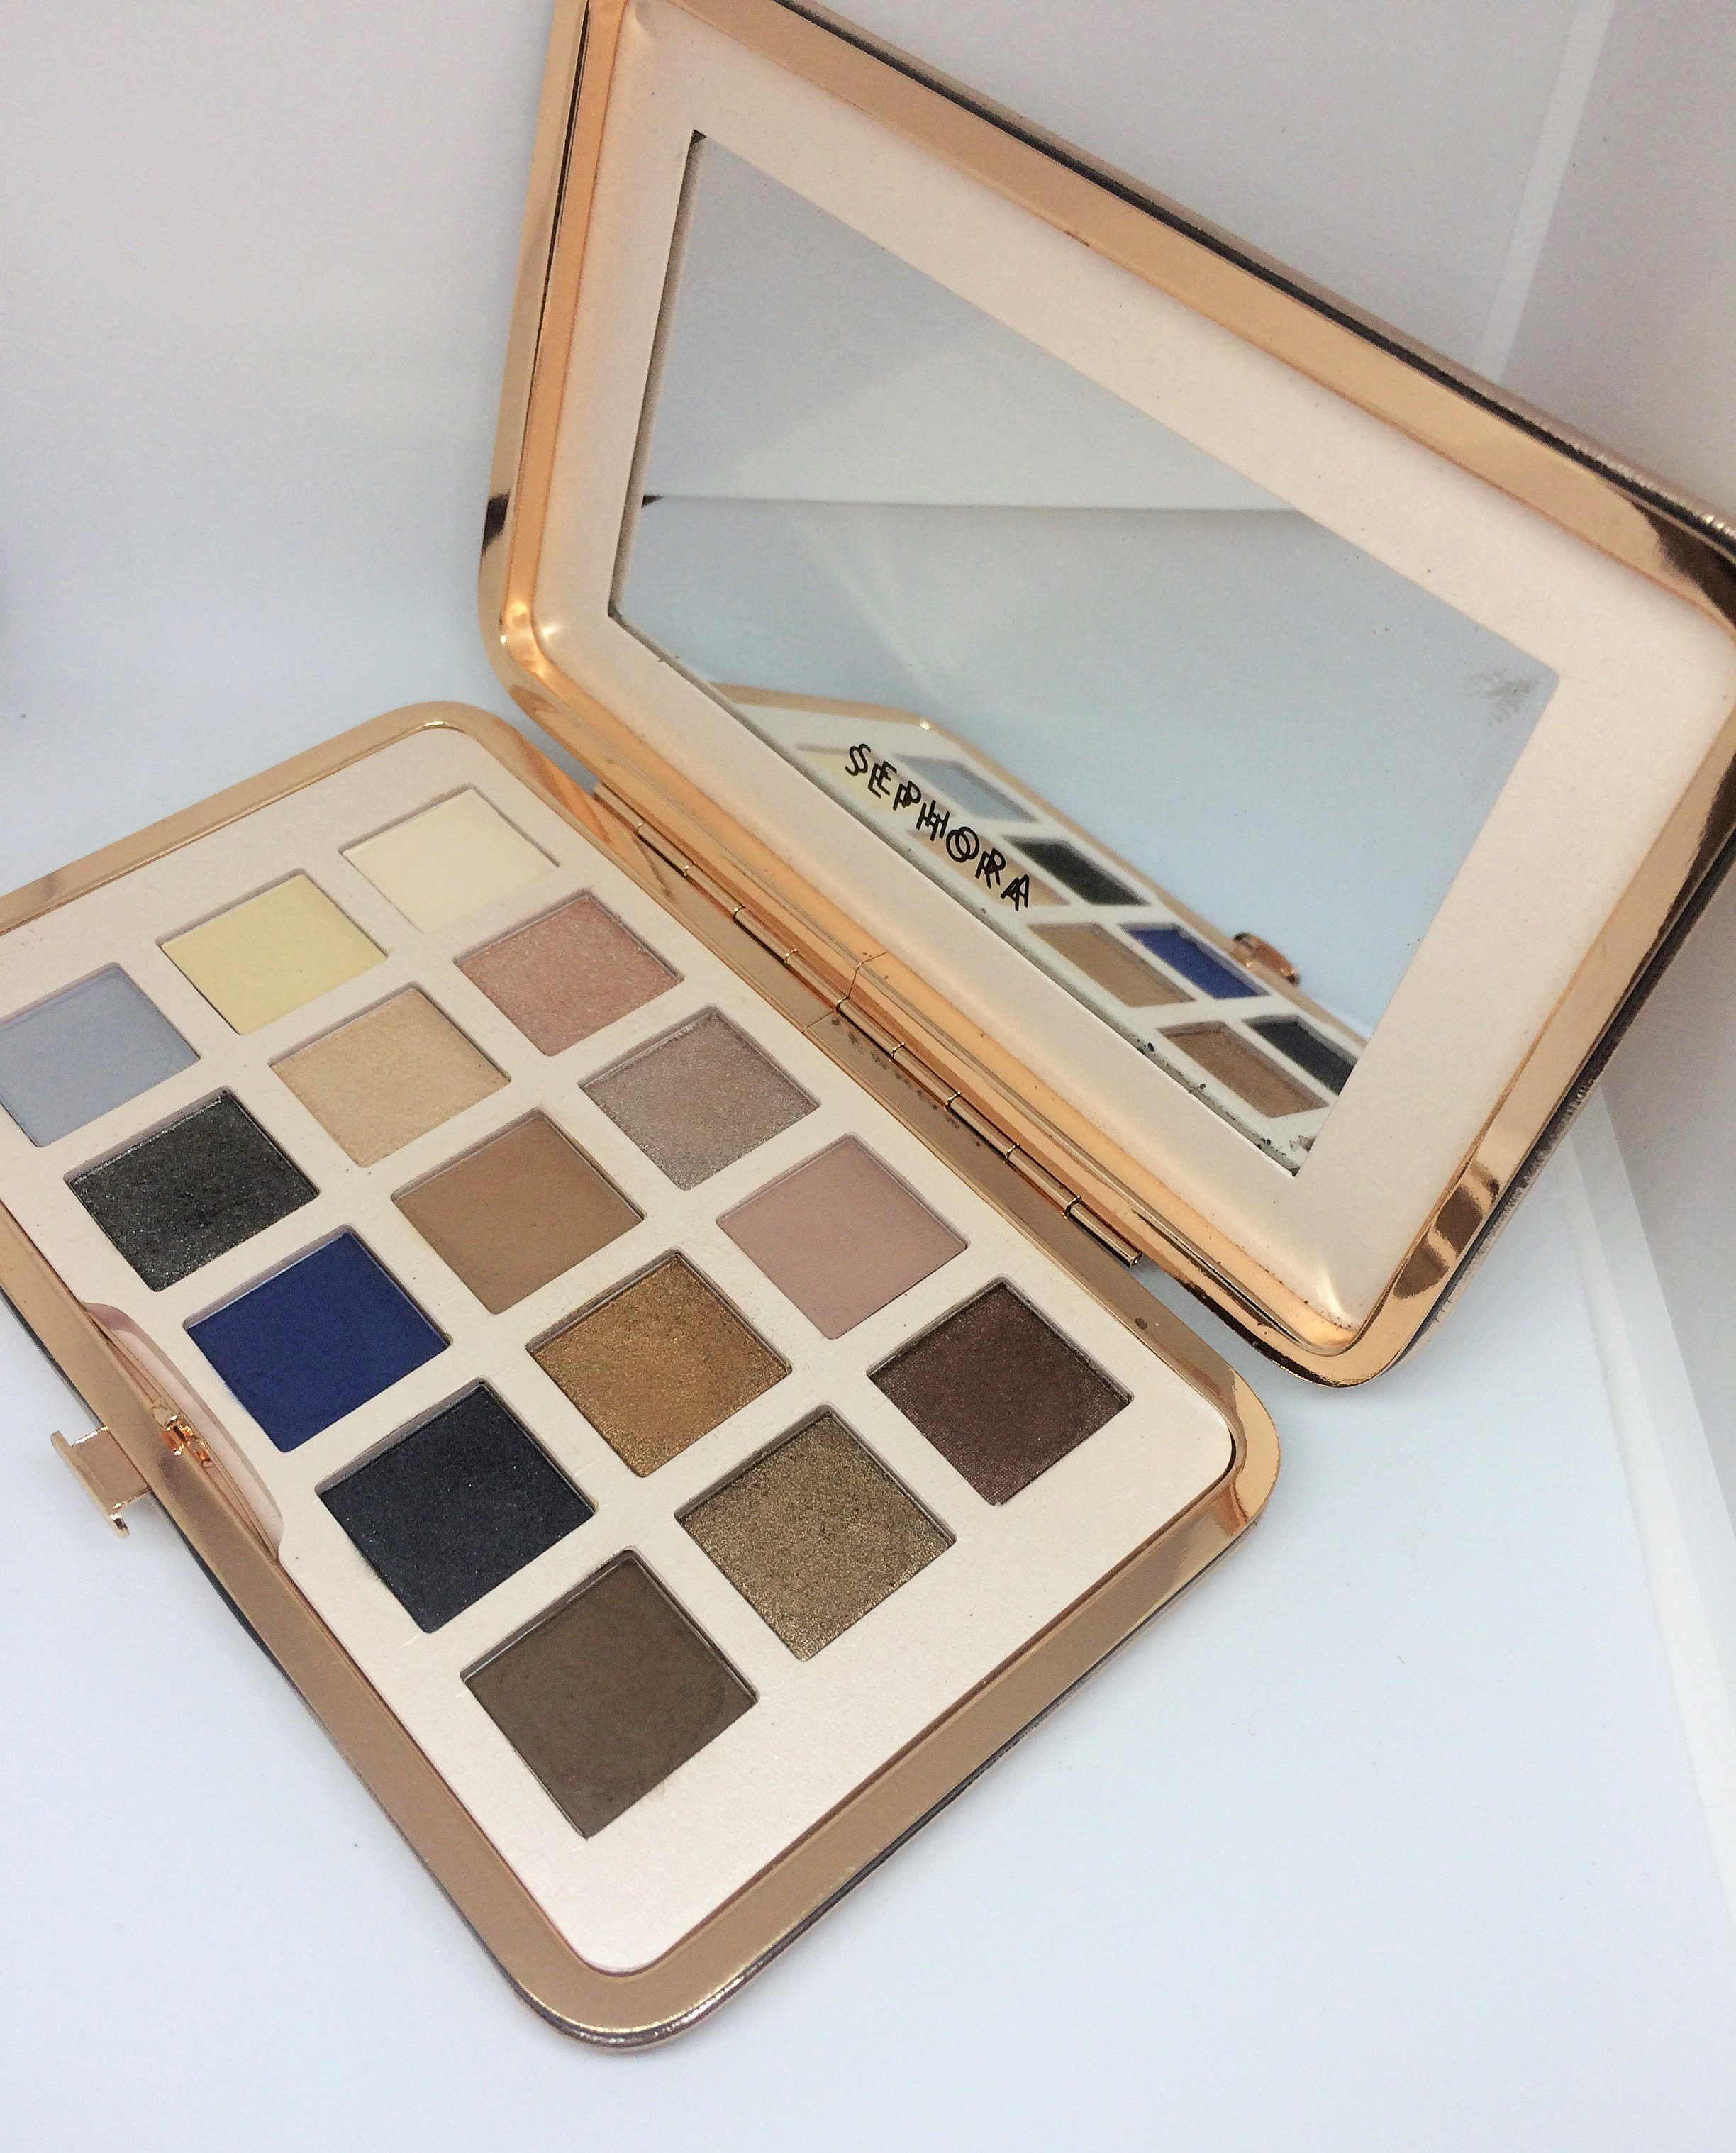 Sephora Once Upon A Palette (13).jpg